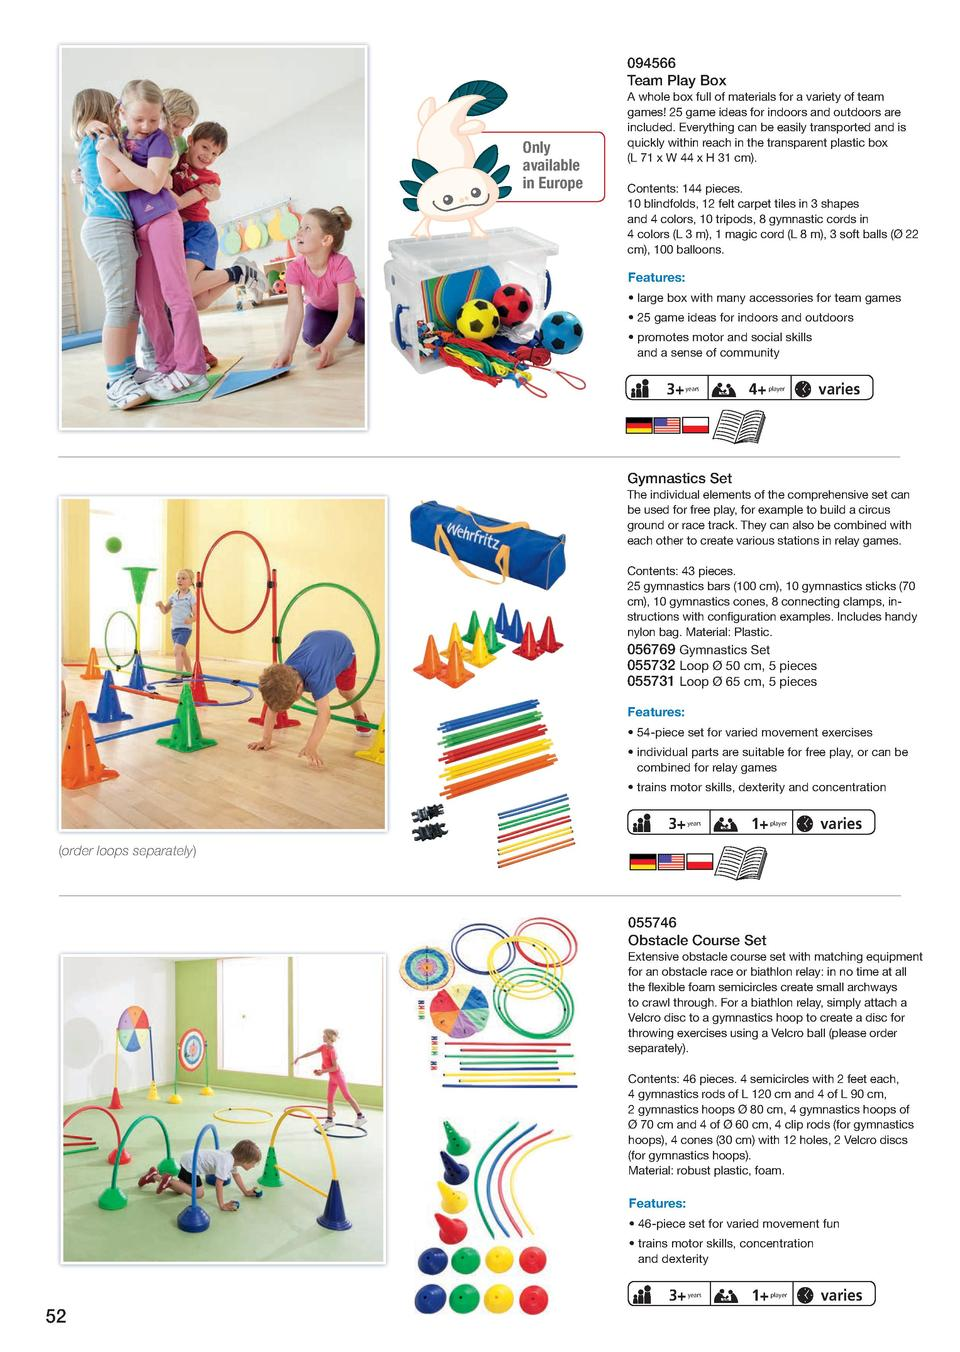 48 Piece Set Constructive Playthings Create-A-Course Set Obstacle Course and Game Markers